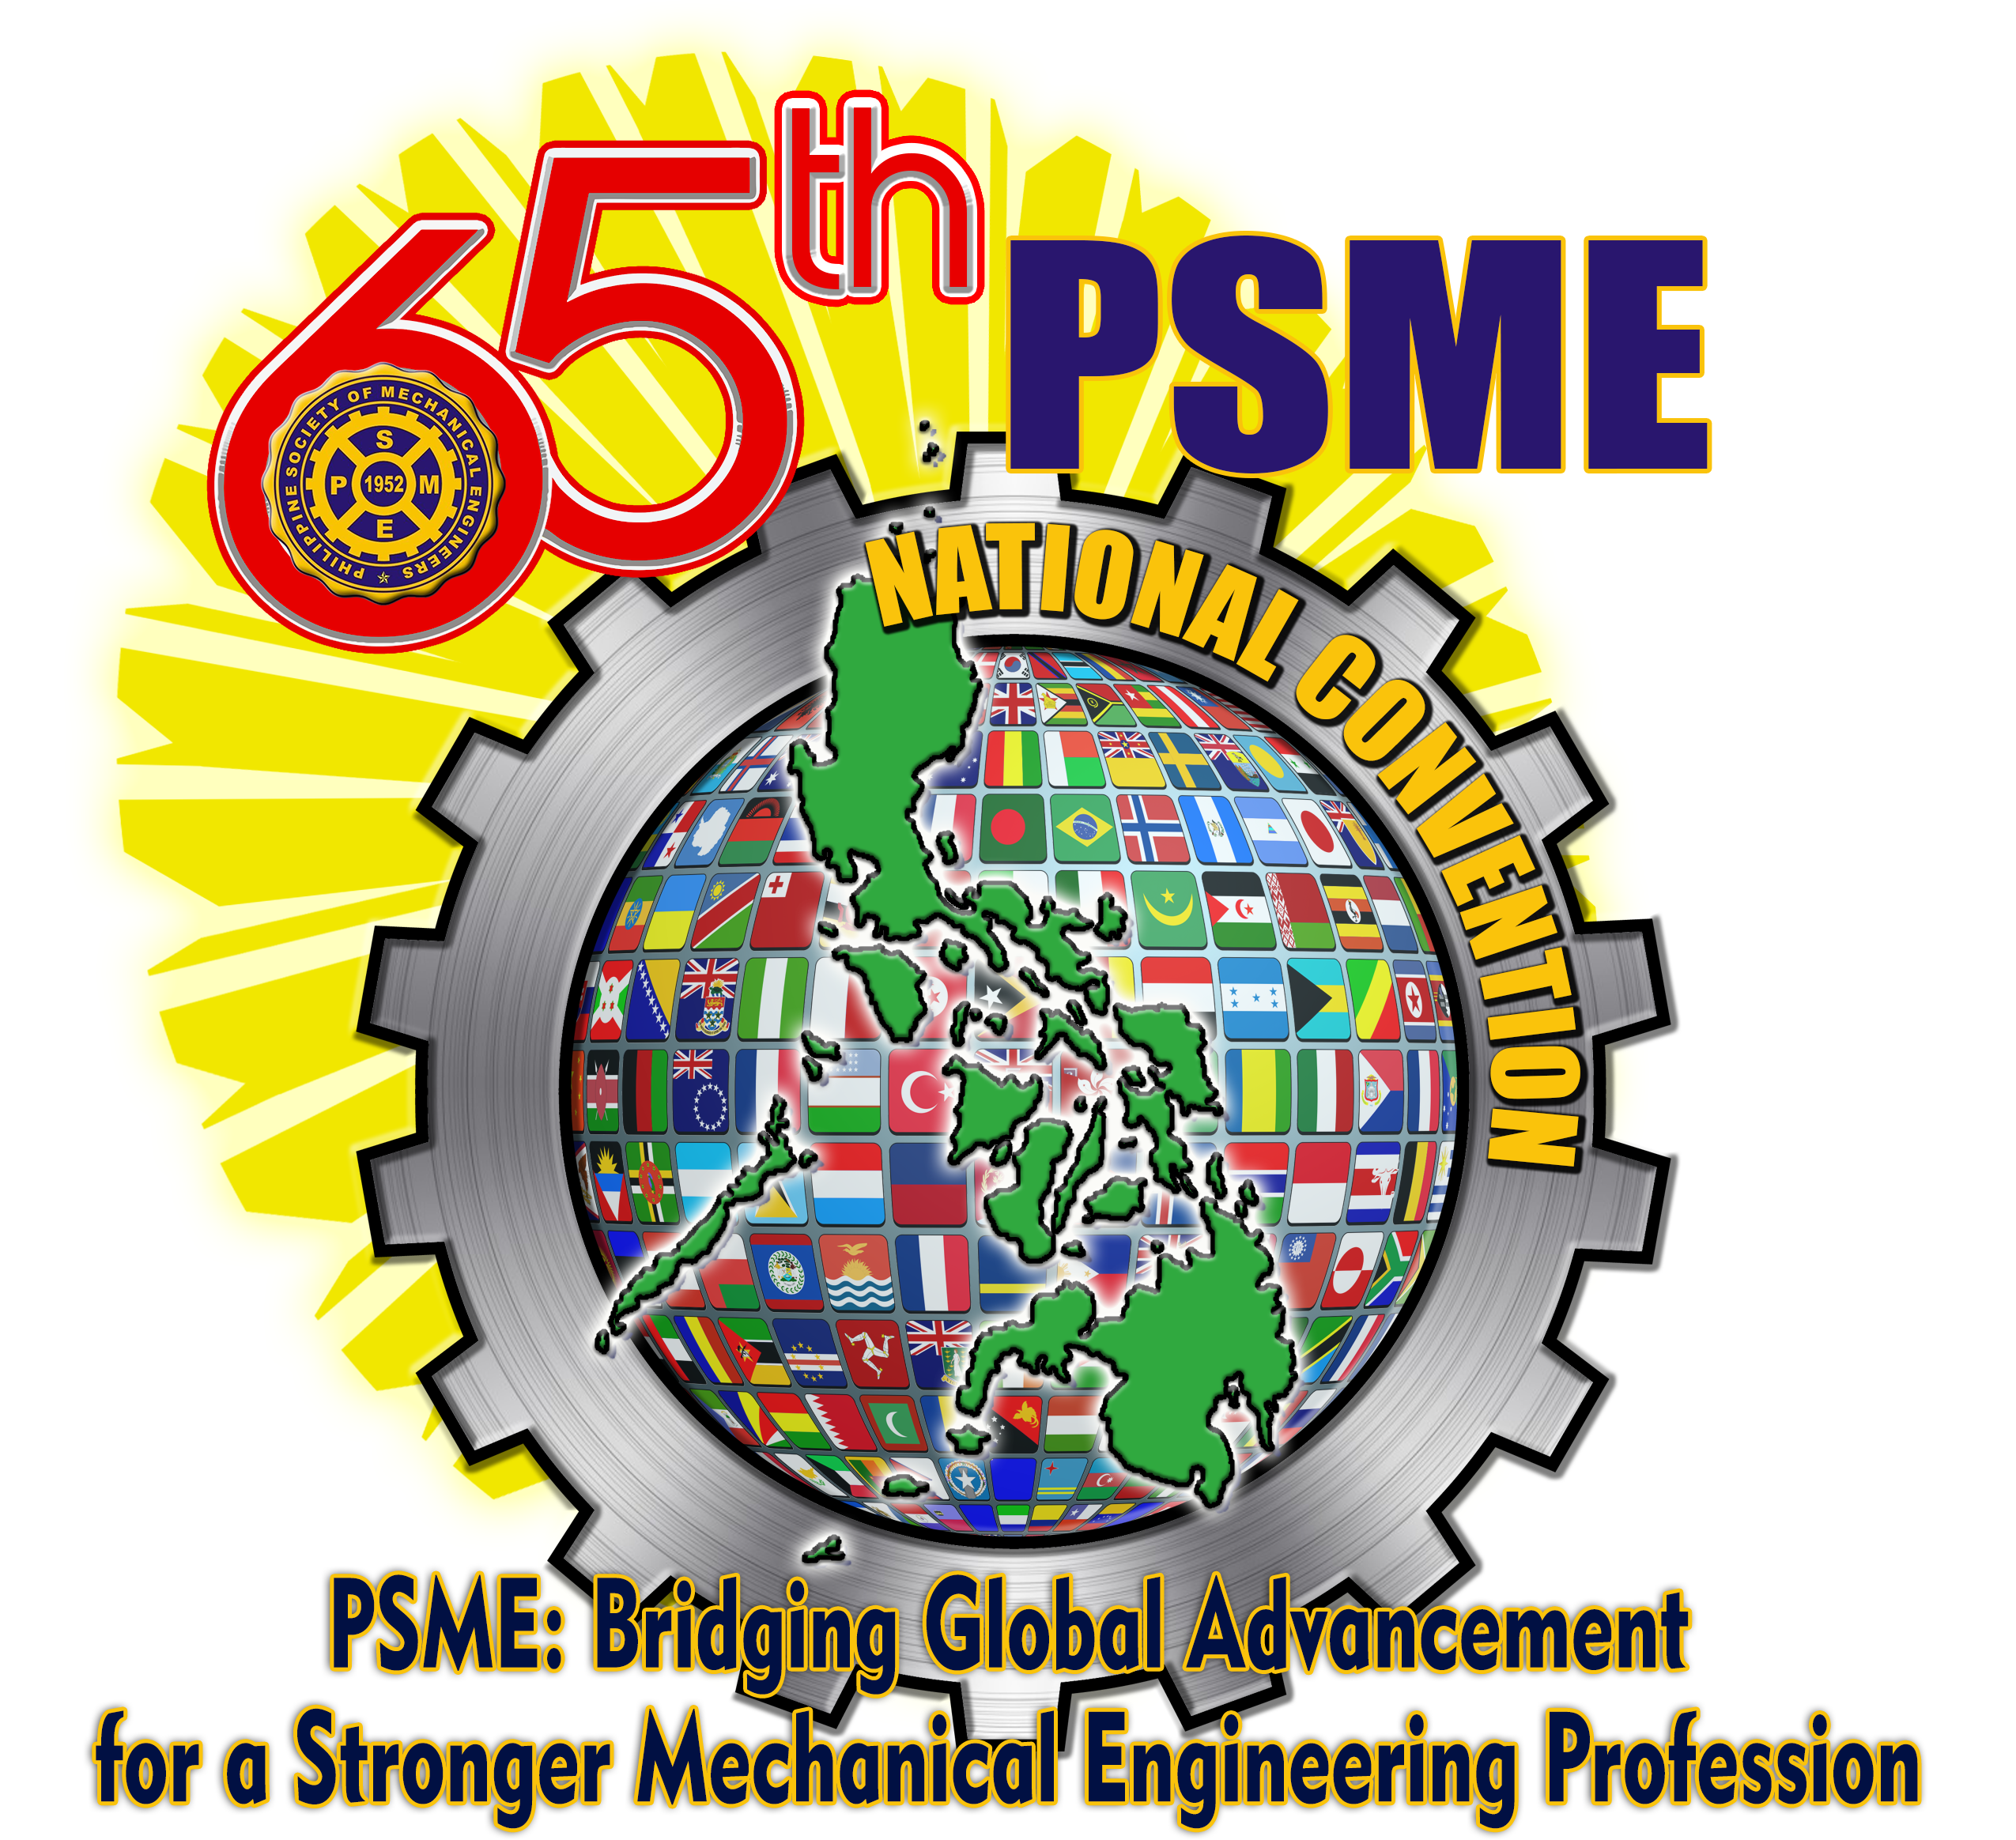 65th PSME National Convention